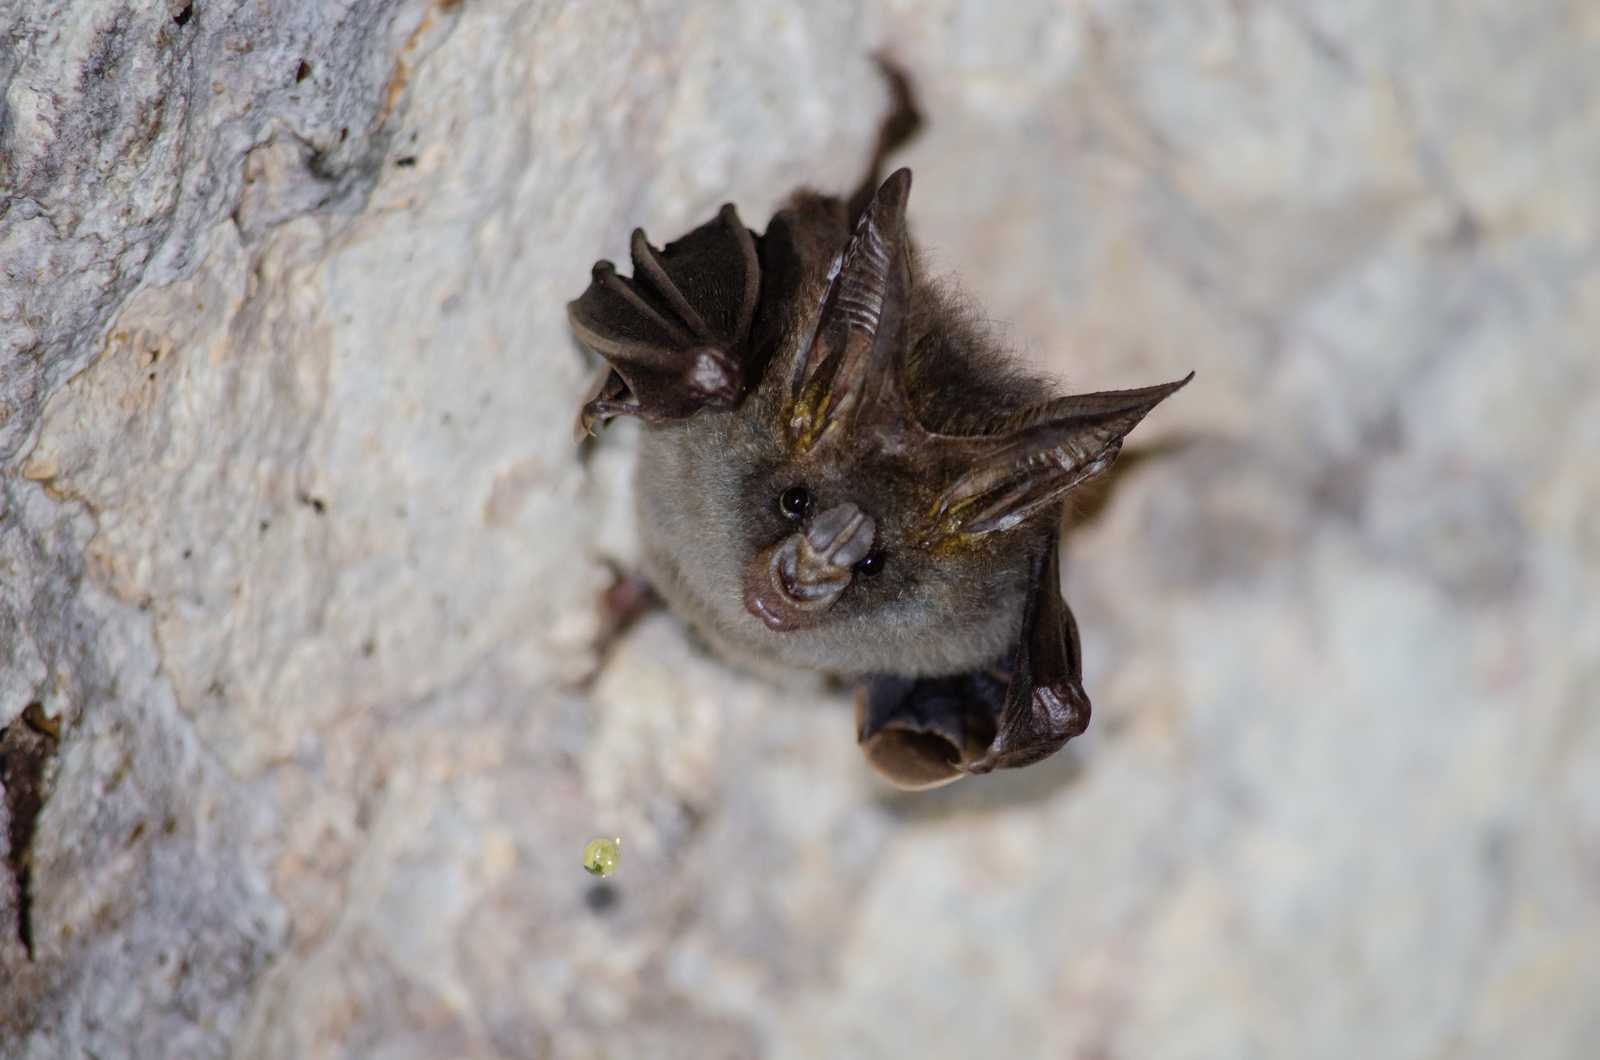 can bats fly from the ground?